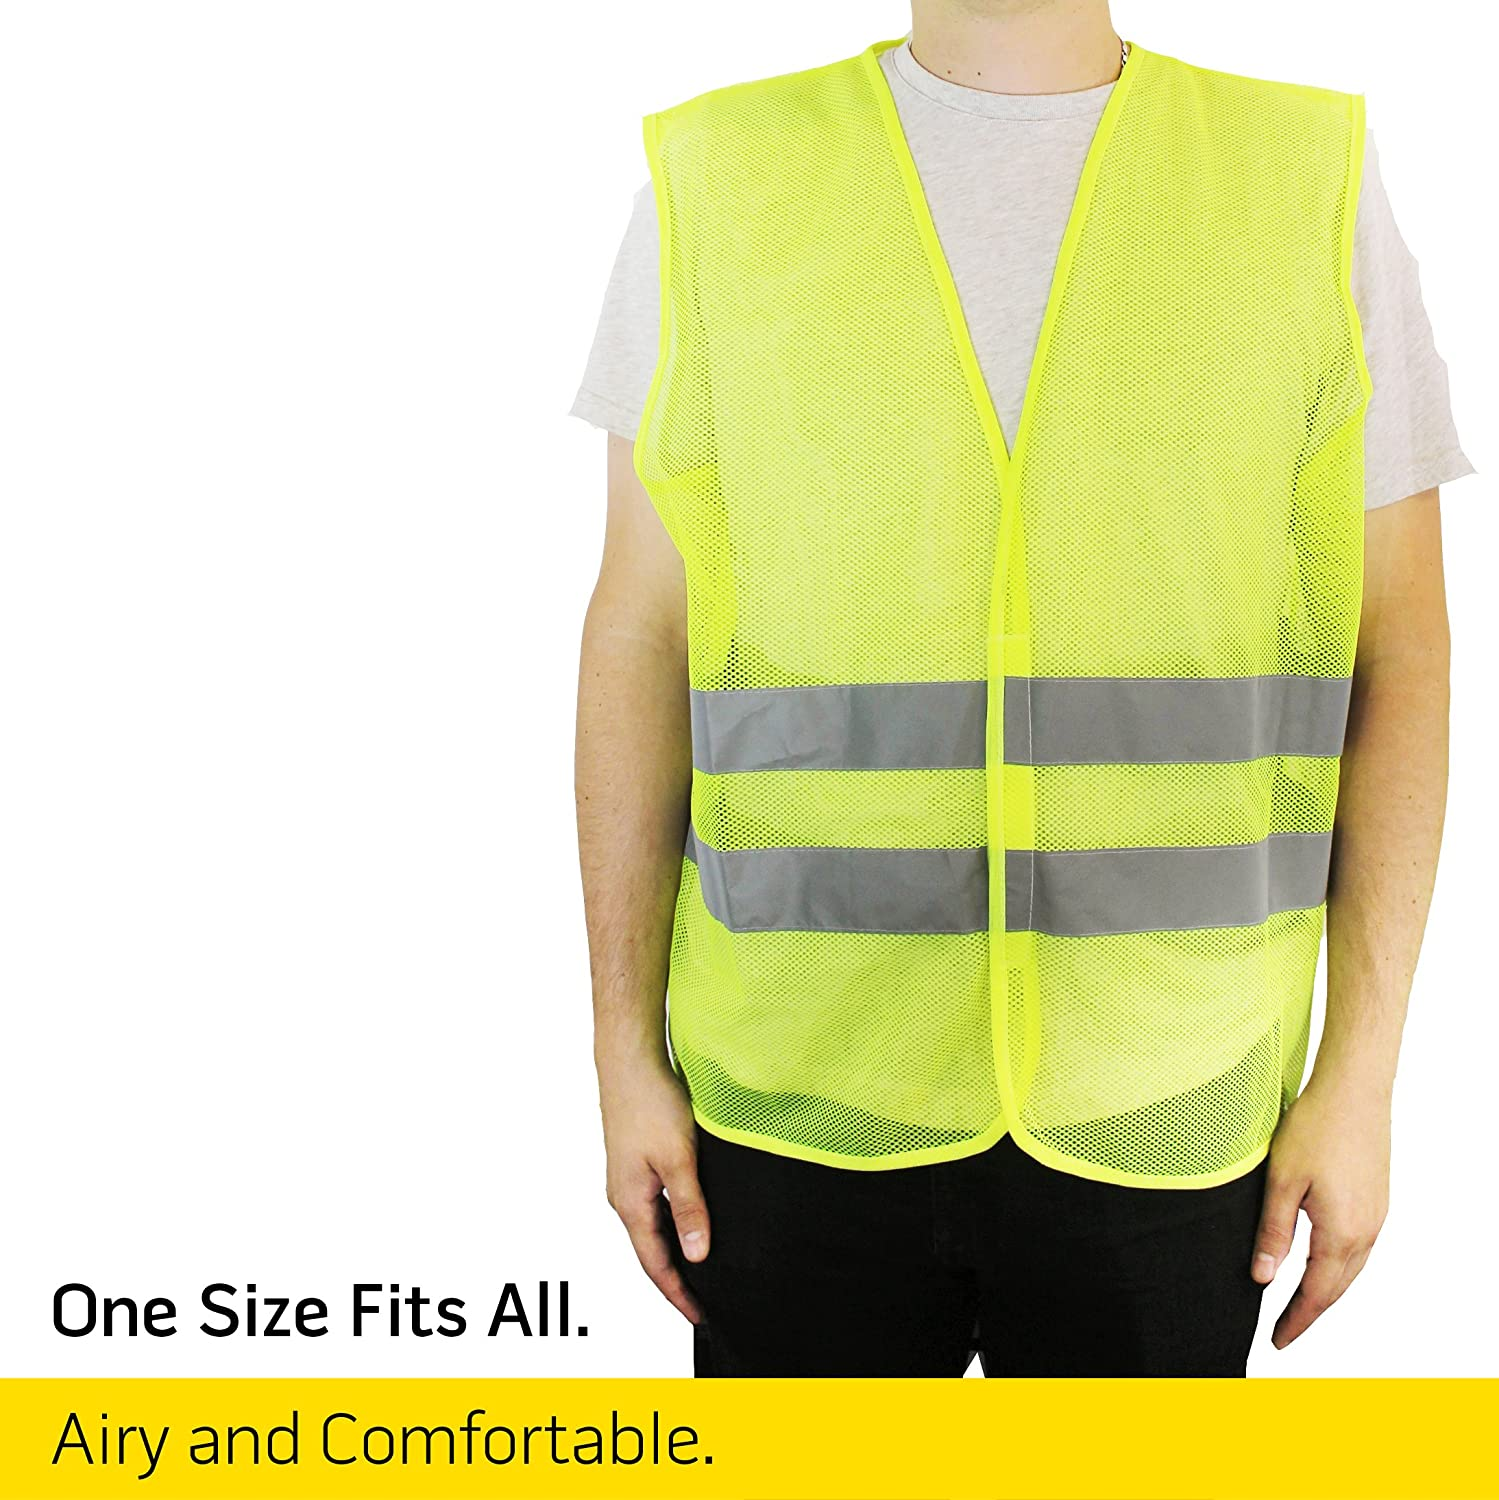 Small Product Image of PeerBasics Reflection High Visibility Safety Vest